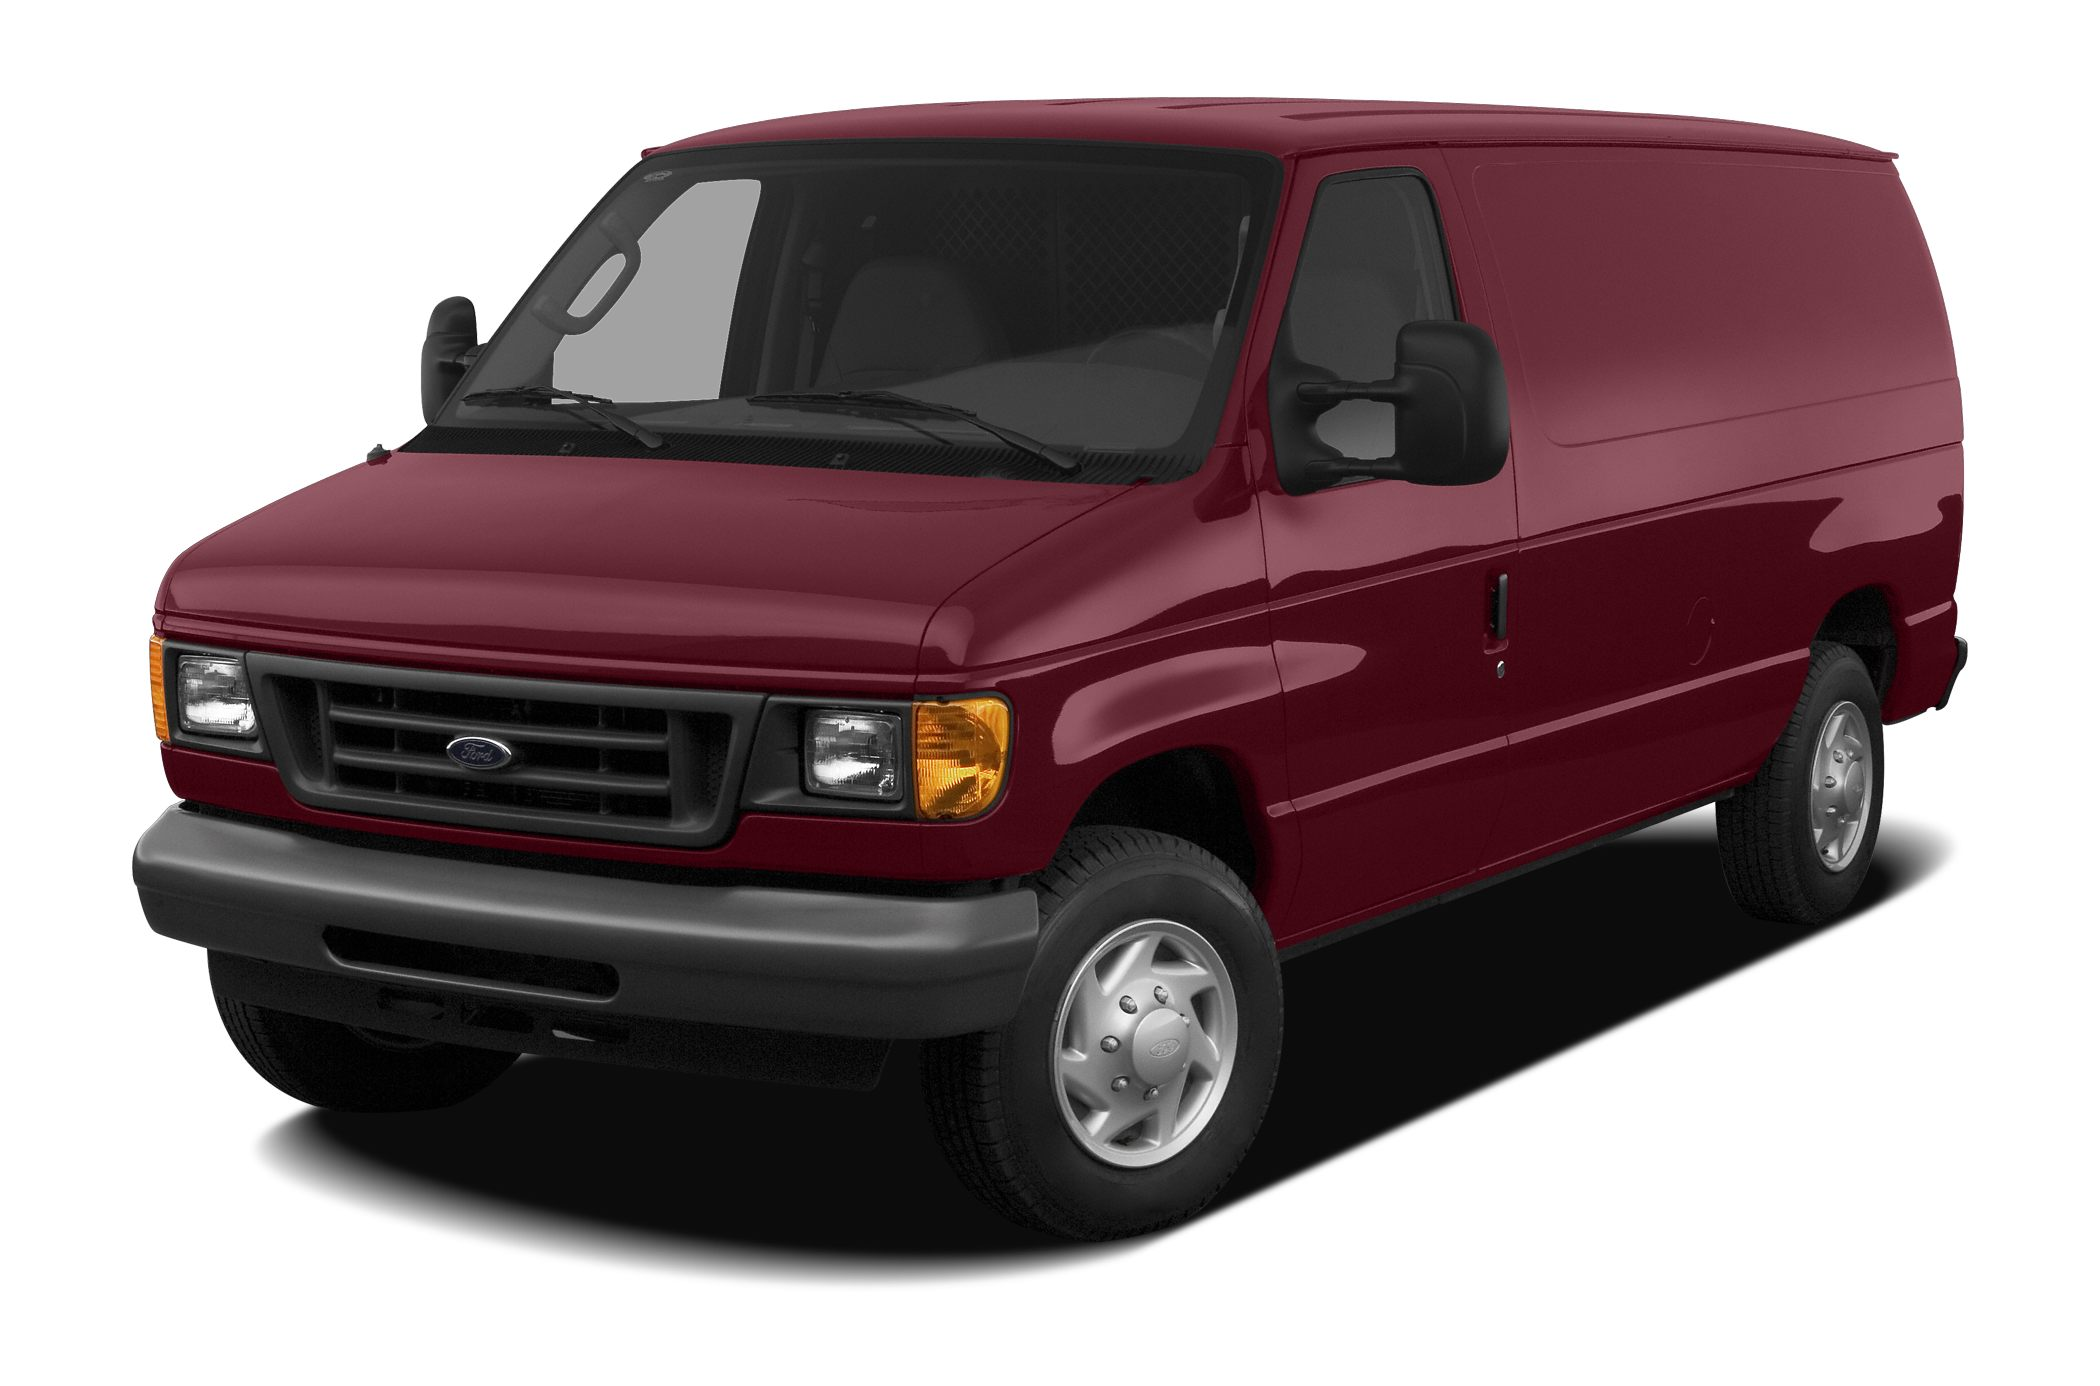 2007 Ford E350 Super Duty Cargo Van for sale in Chattanooga for $6,900 with 247,007 miles